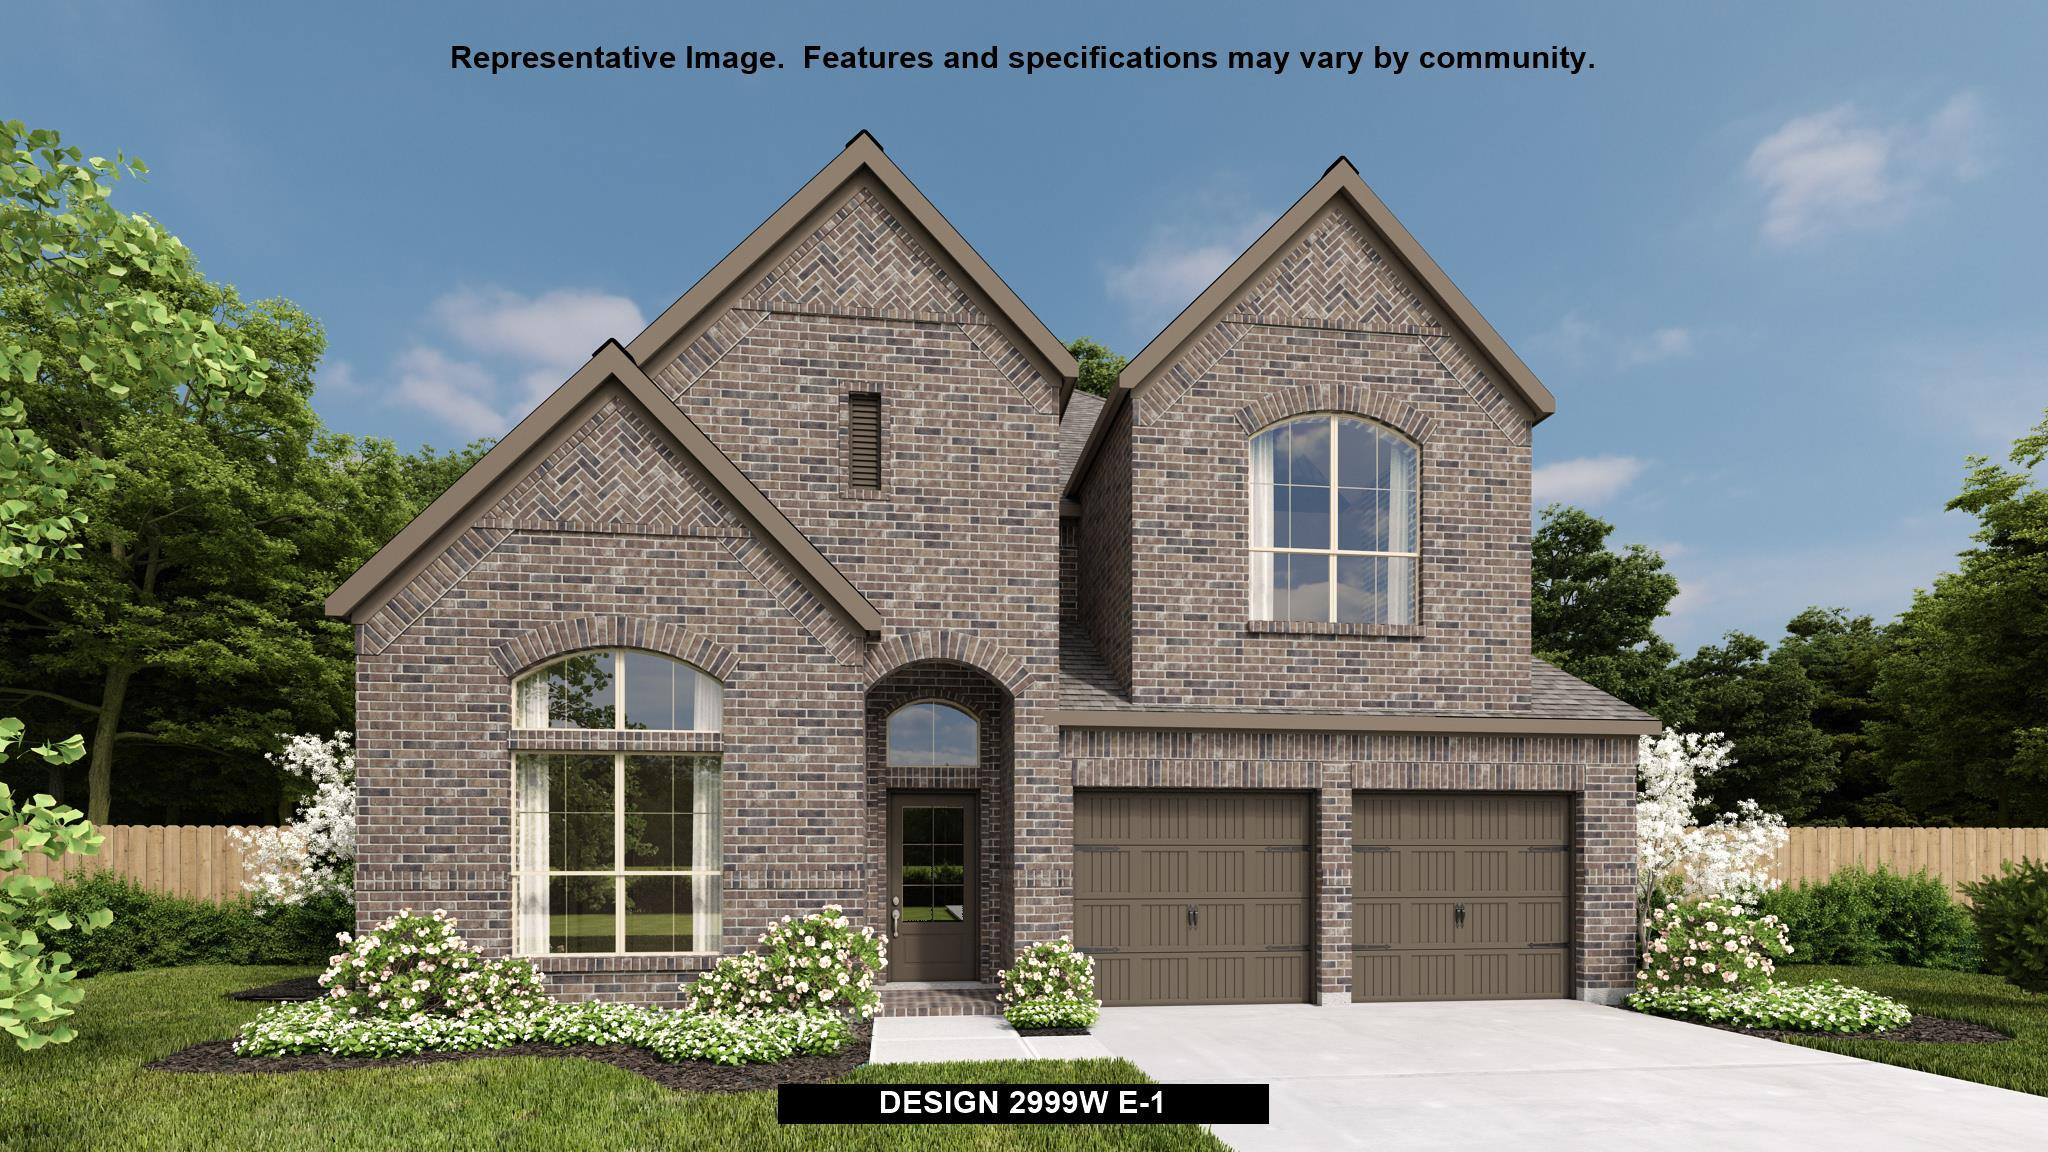 Single Family for Sale at Blanco Vista 50' - 2999w 120 Lacey Oak Loop San Marcos, Texas 78666 United States